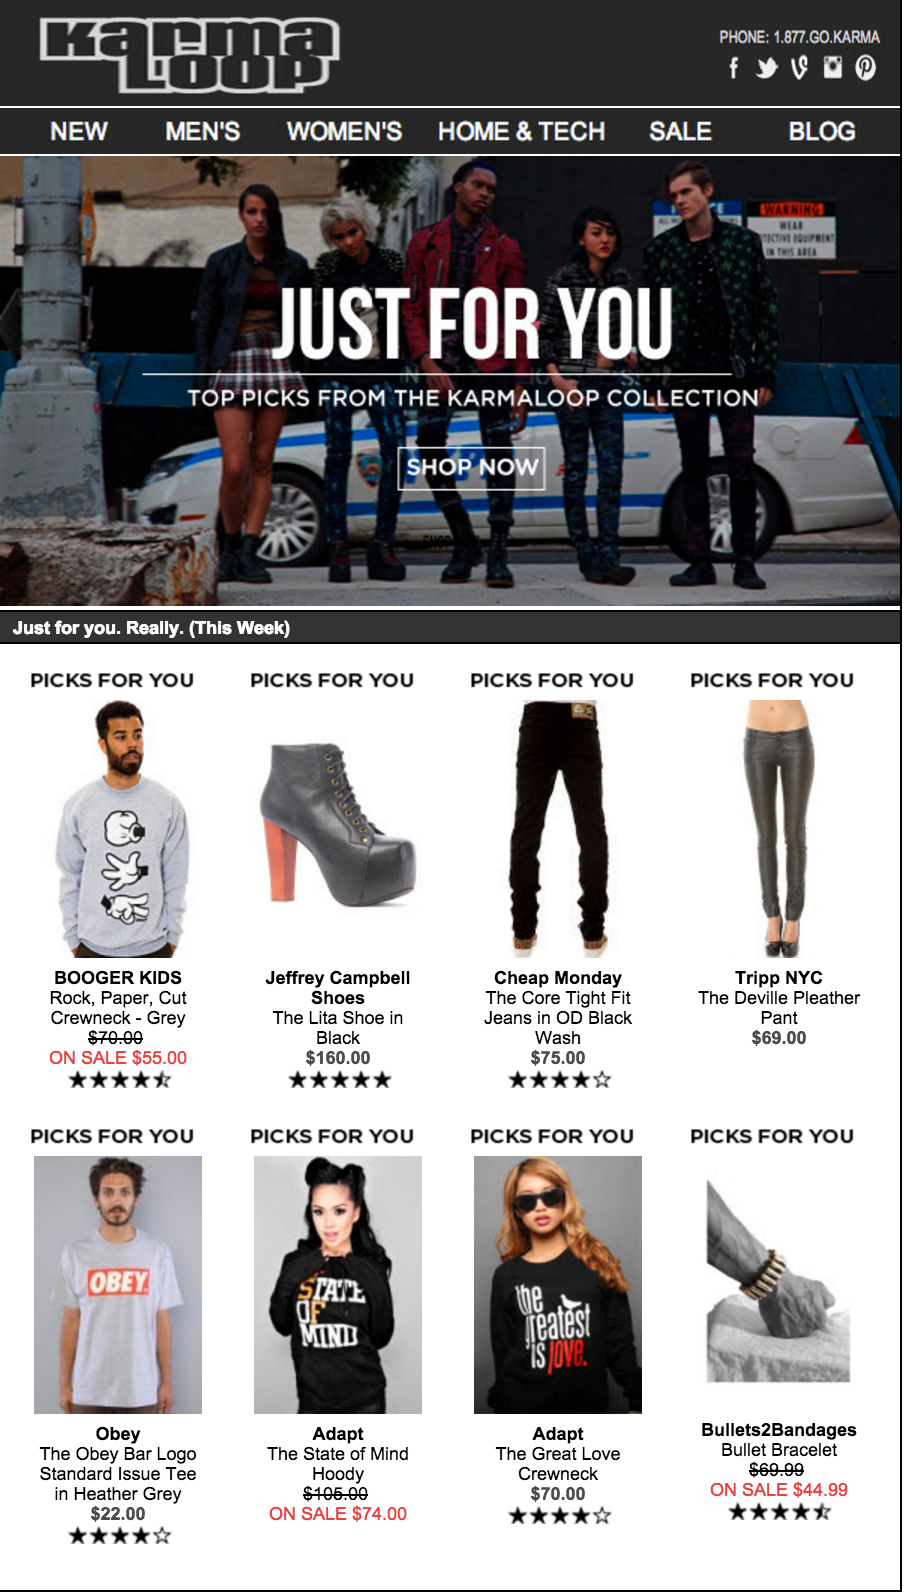 Karmaloop personalized recommendation email marketing